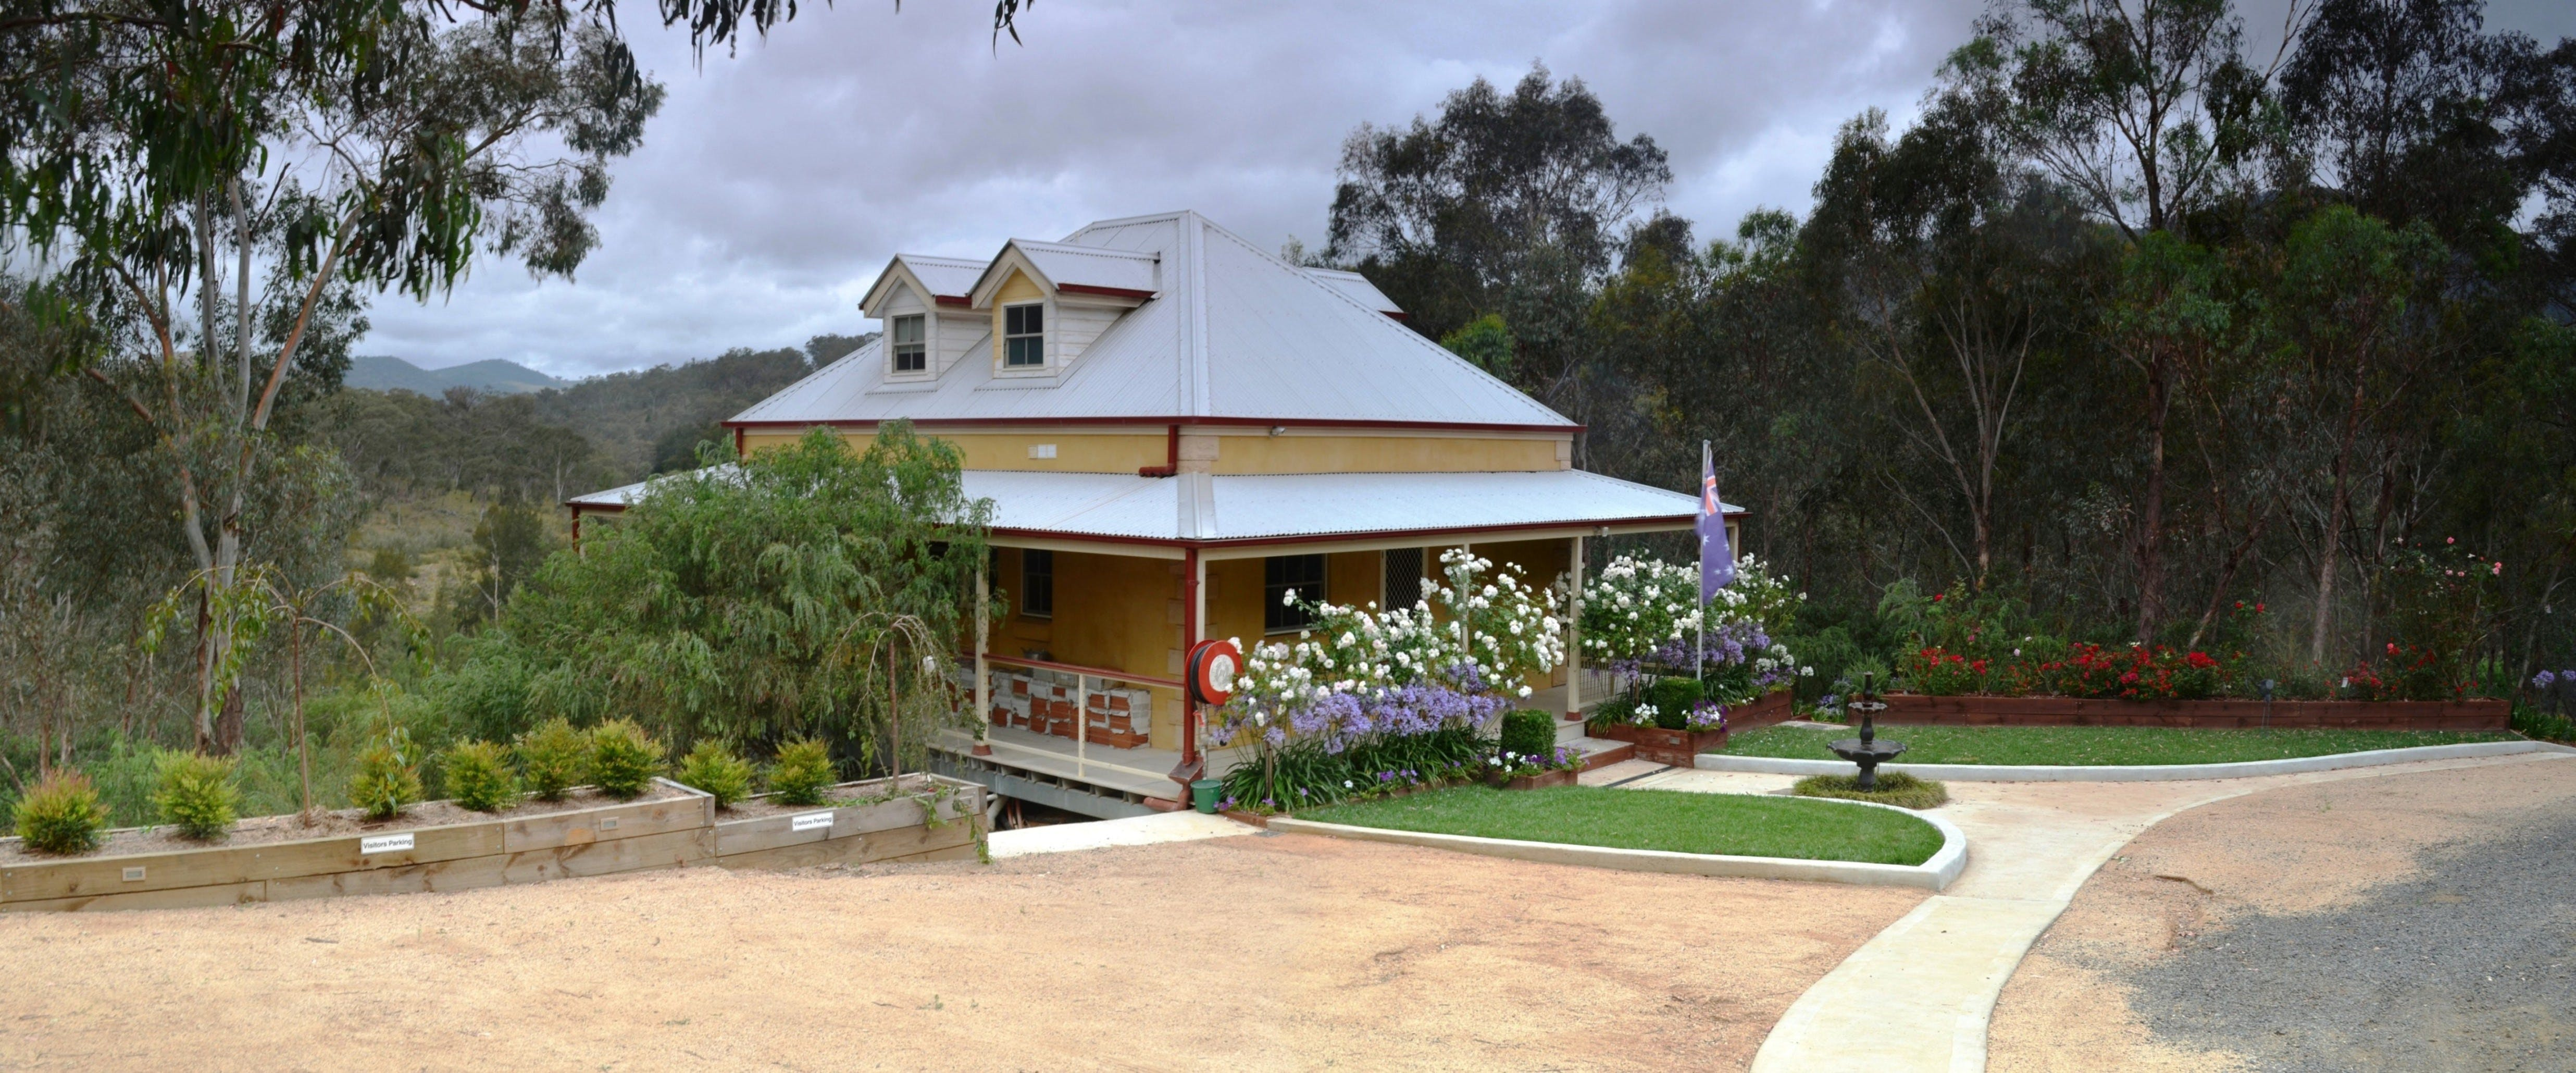 Tanwarra Lodge Bed and Breakfast - Accommodation NT